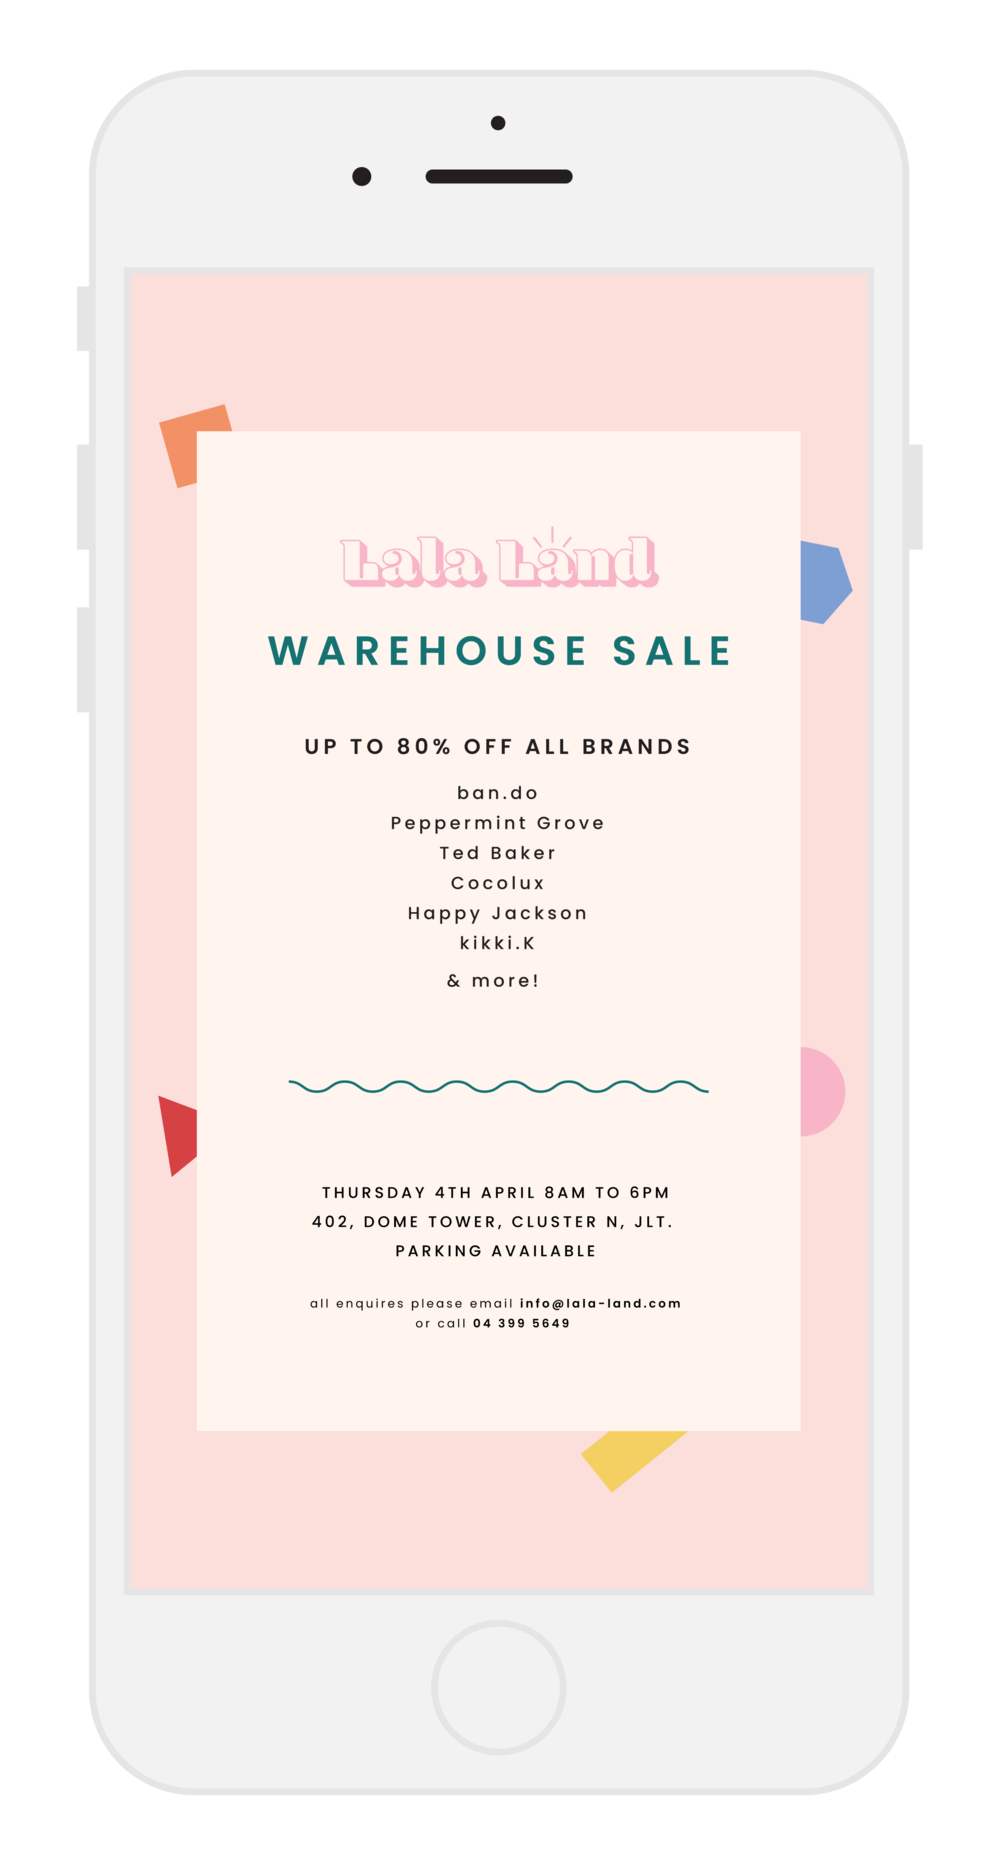 WAREHOUSE SALE GRAPHICS-02.png